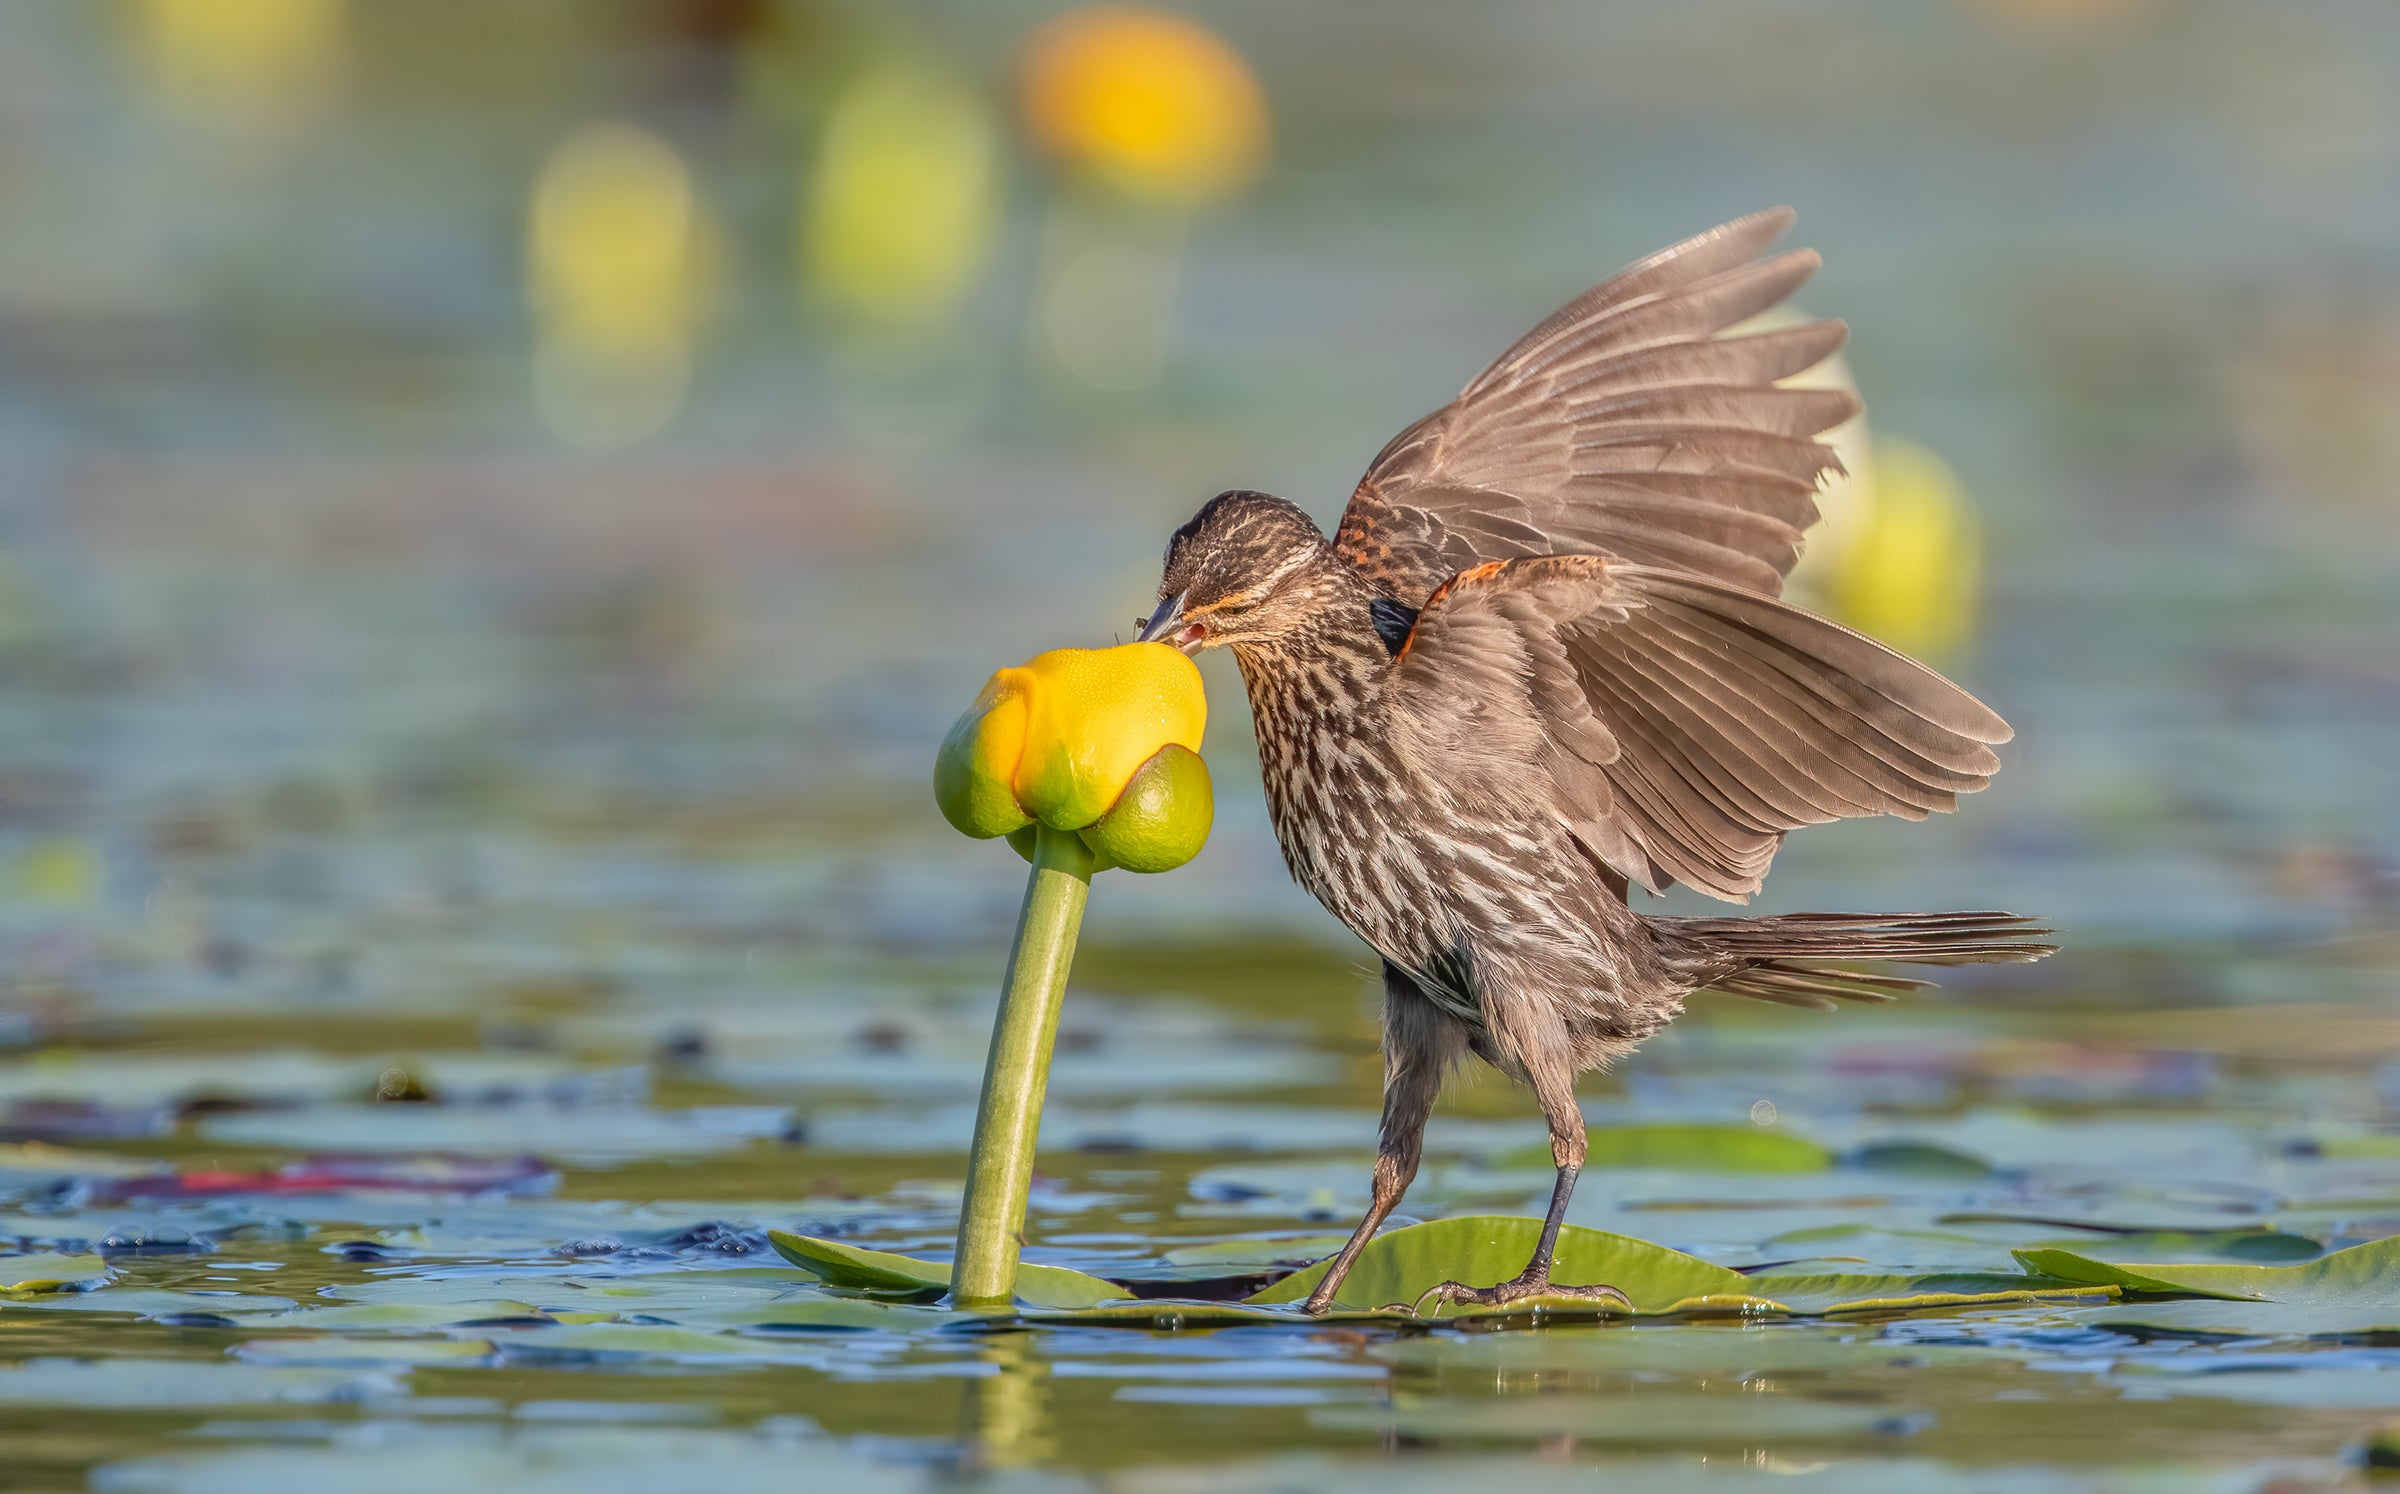 bird eating out of a flower over water